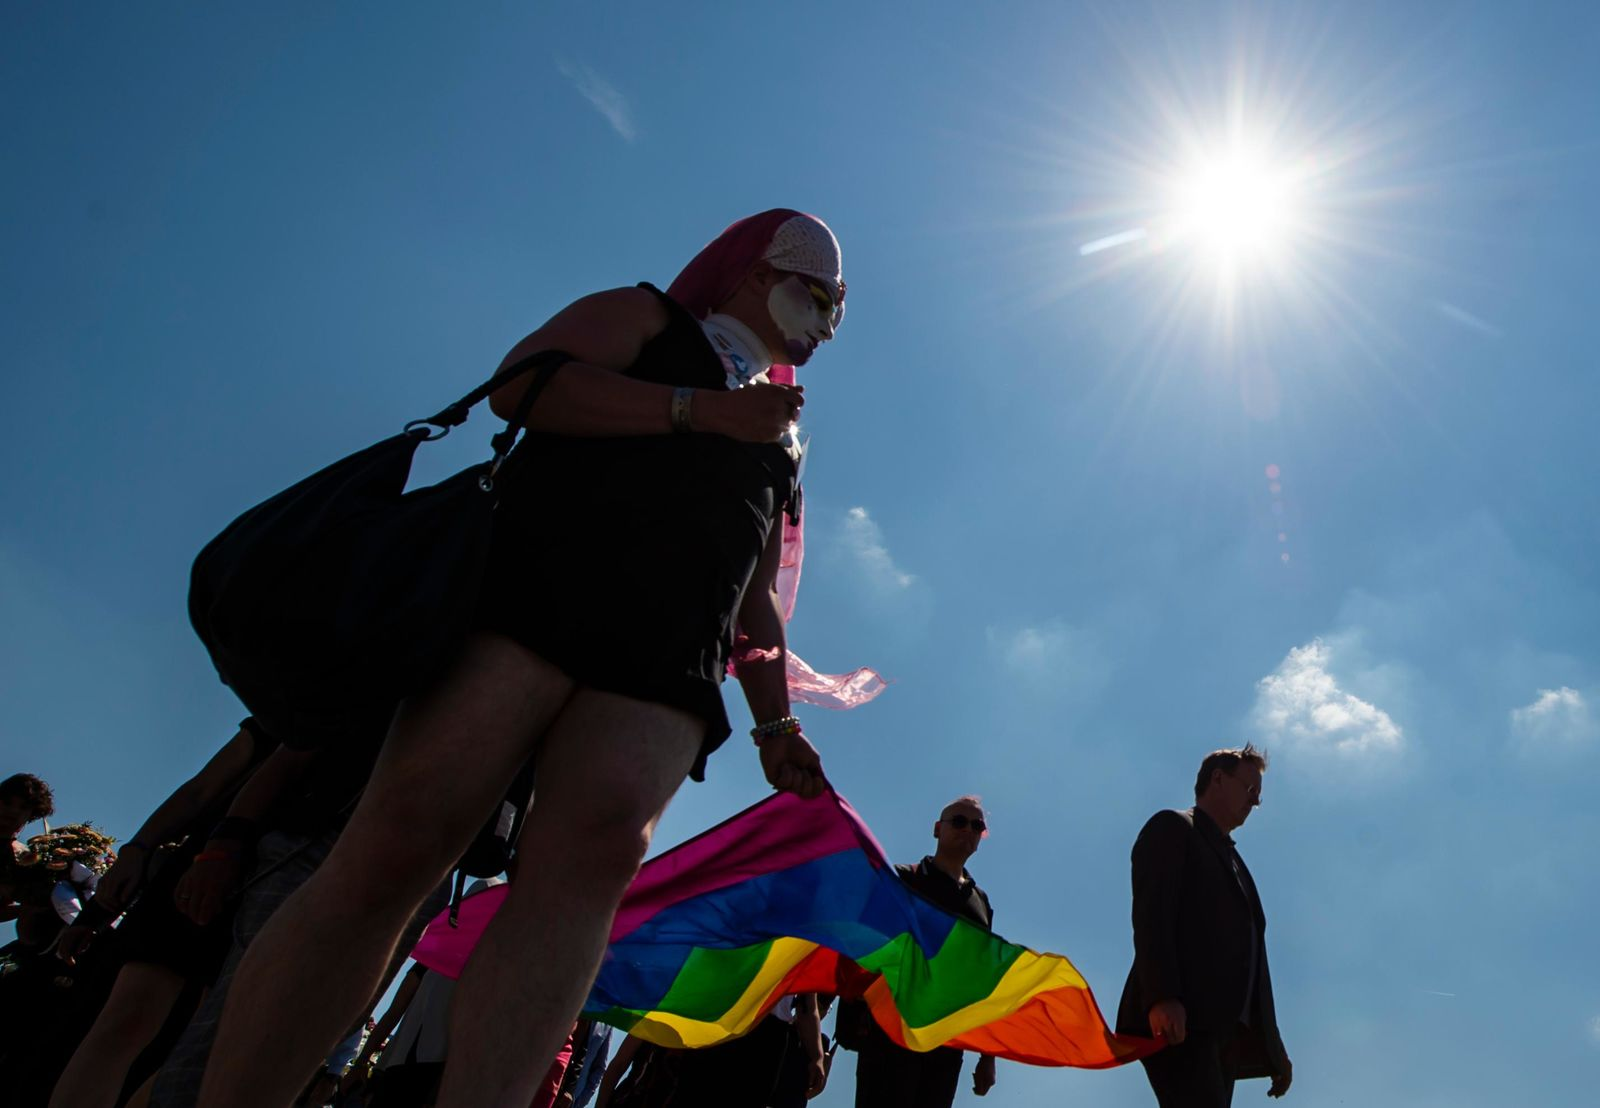 People carry a rainbow flag in remembrance for prisoners assigned a pink triangle in the former Nazi concentration camp Buchenwald within the Christopher Street Day in Weimar, Germany, Sunday, June 23, 2019. There were 650 prisoners assigned a pink triangle in the Buchenwald concentration camp between 1937 and 1945. Many of them lost their lives. (AP Photo/Jens Meyer)